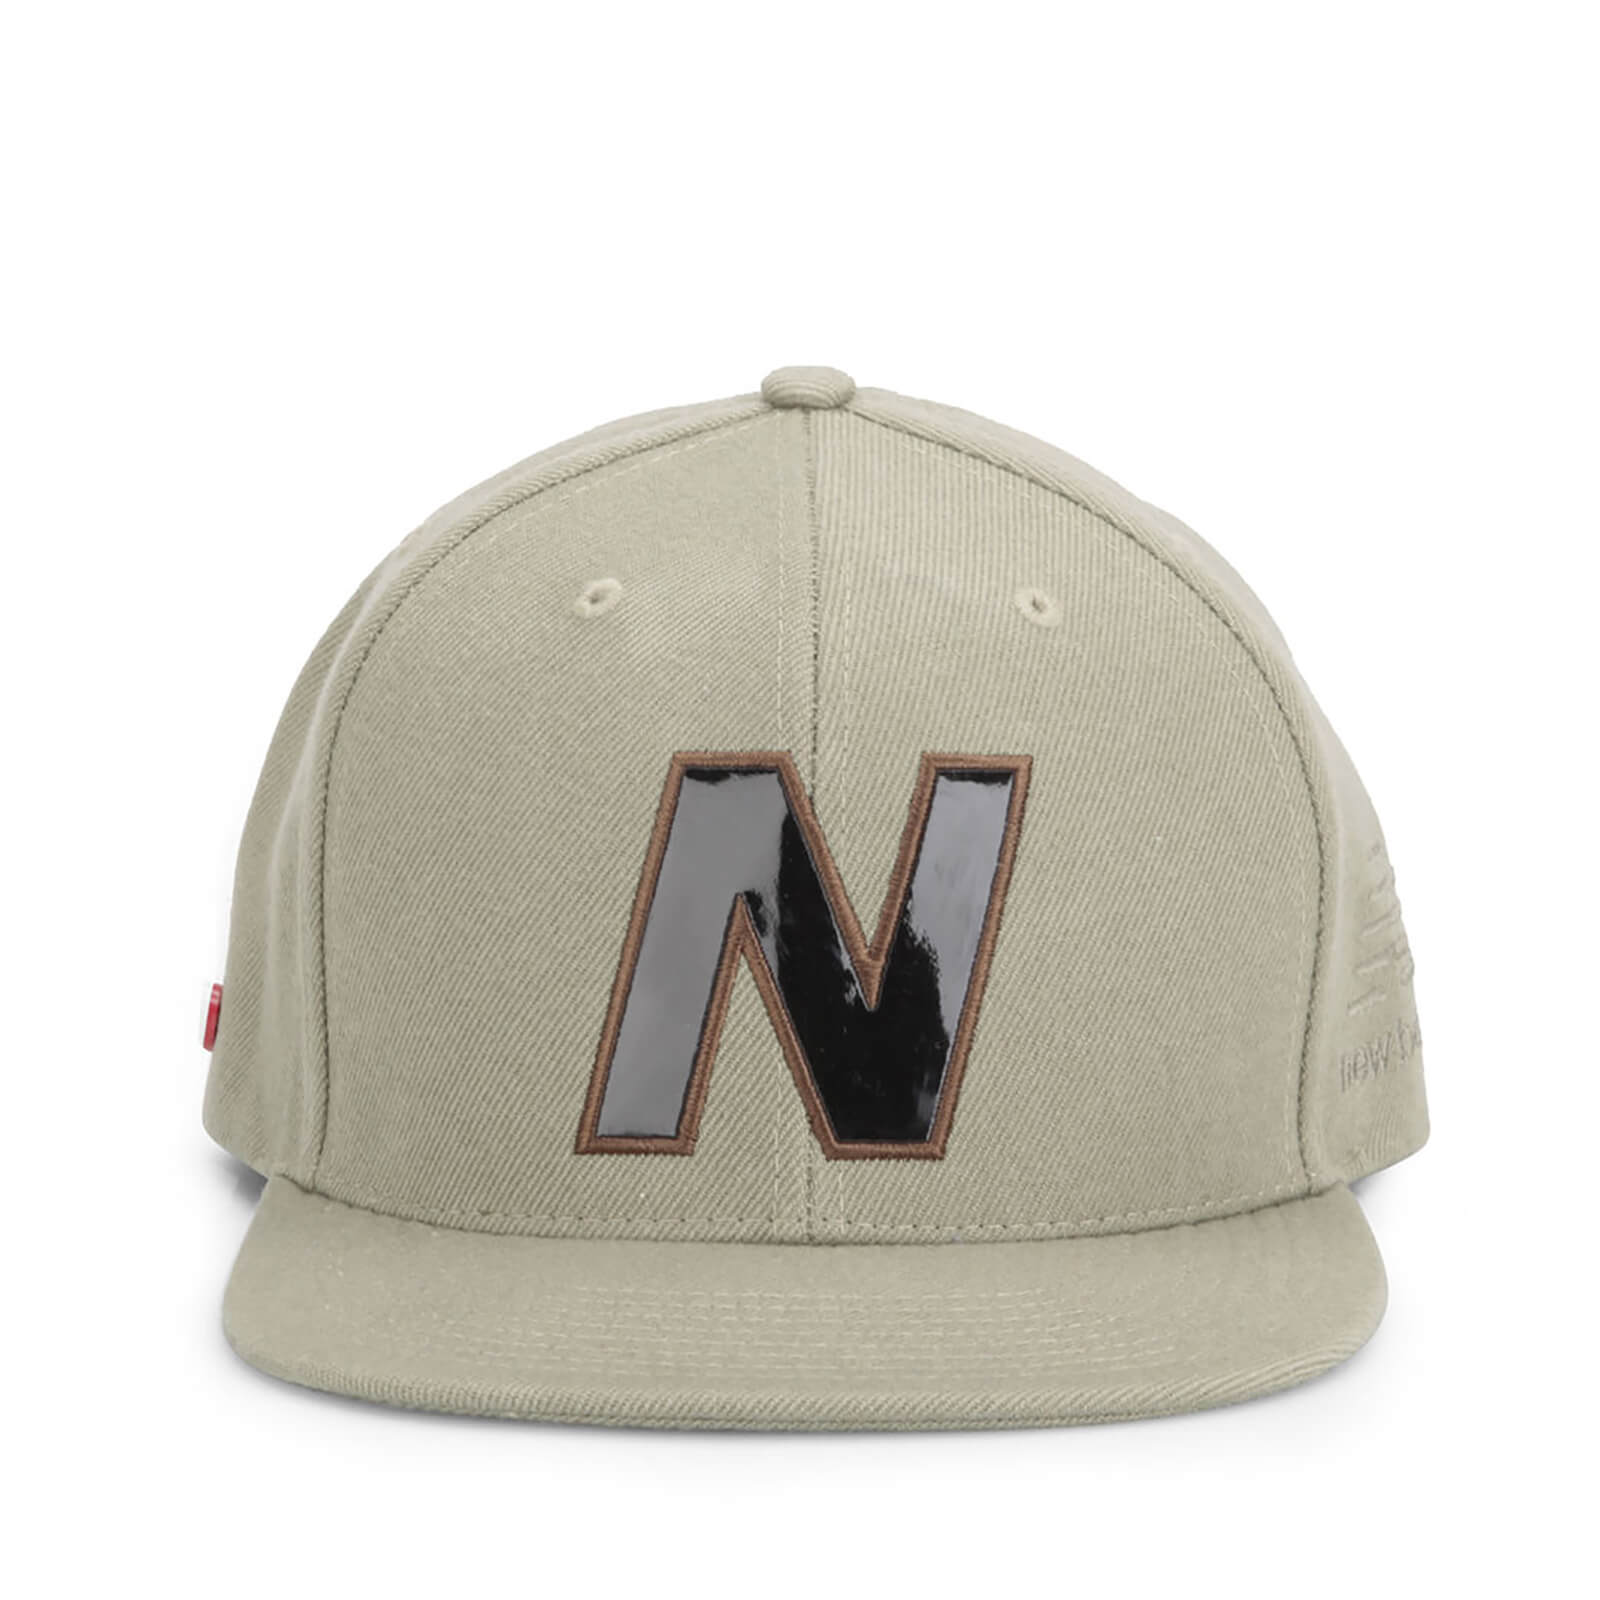 New Balance Unisex Snap 6 Panel Flat Peak Baseball Cap - Acrylic Light Brown/Khaki